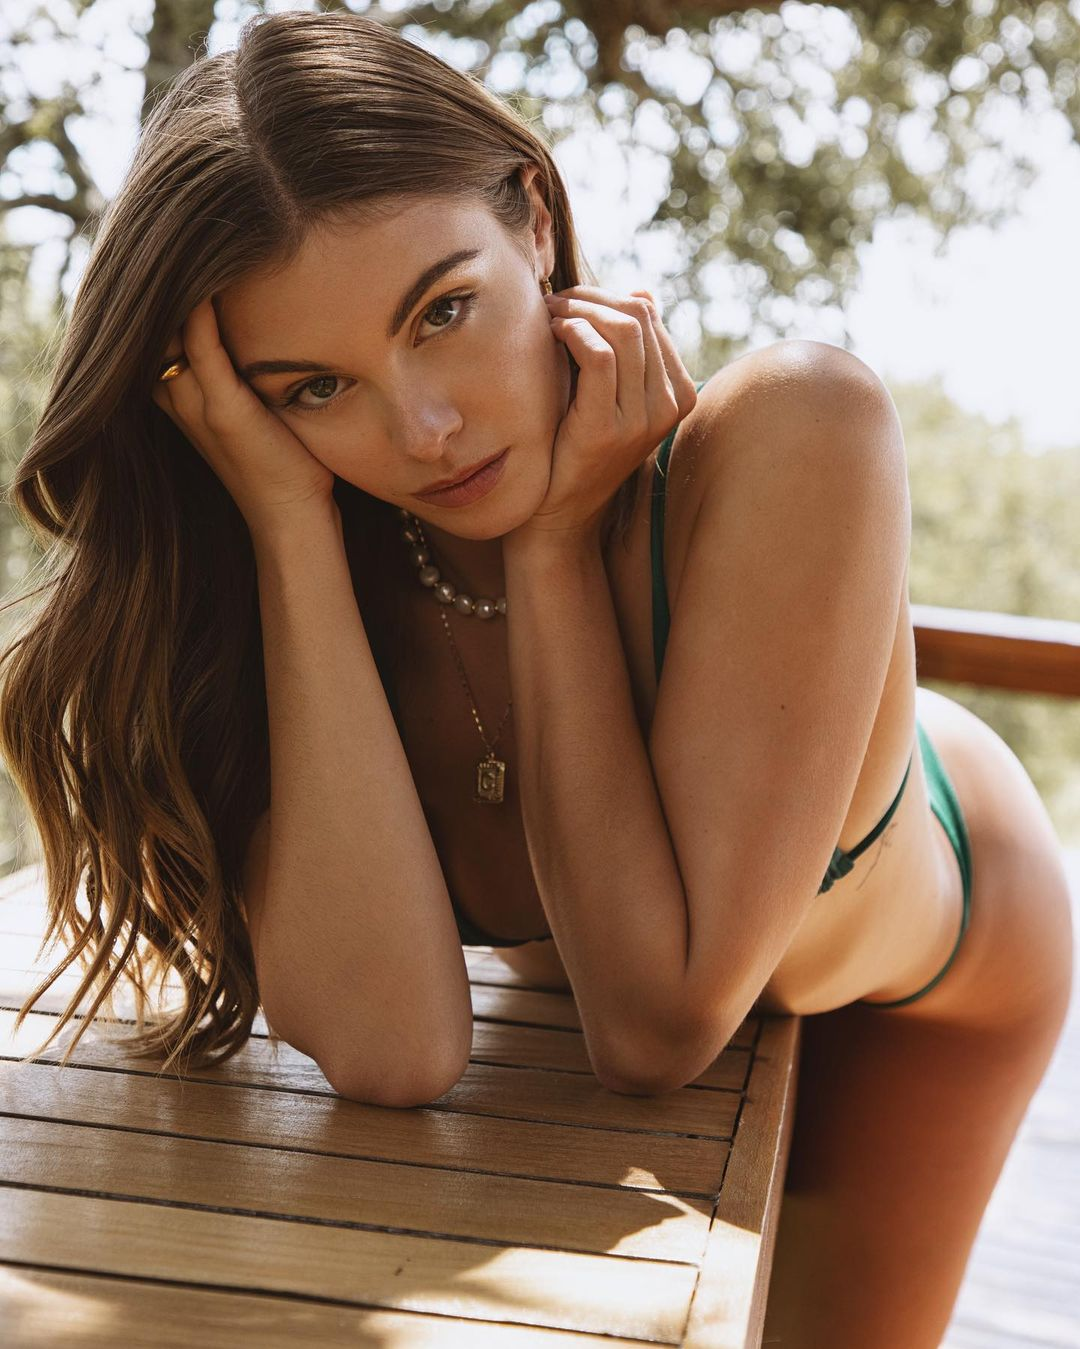 15 sexiest photos of the Carmella Rose model 11